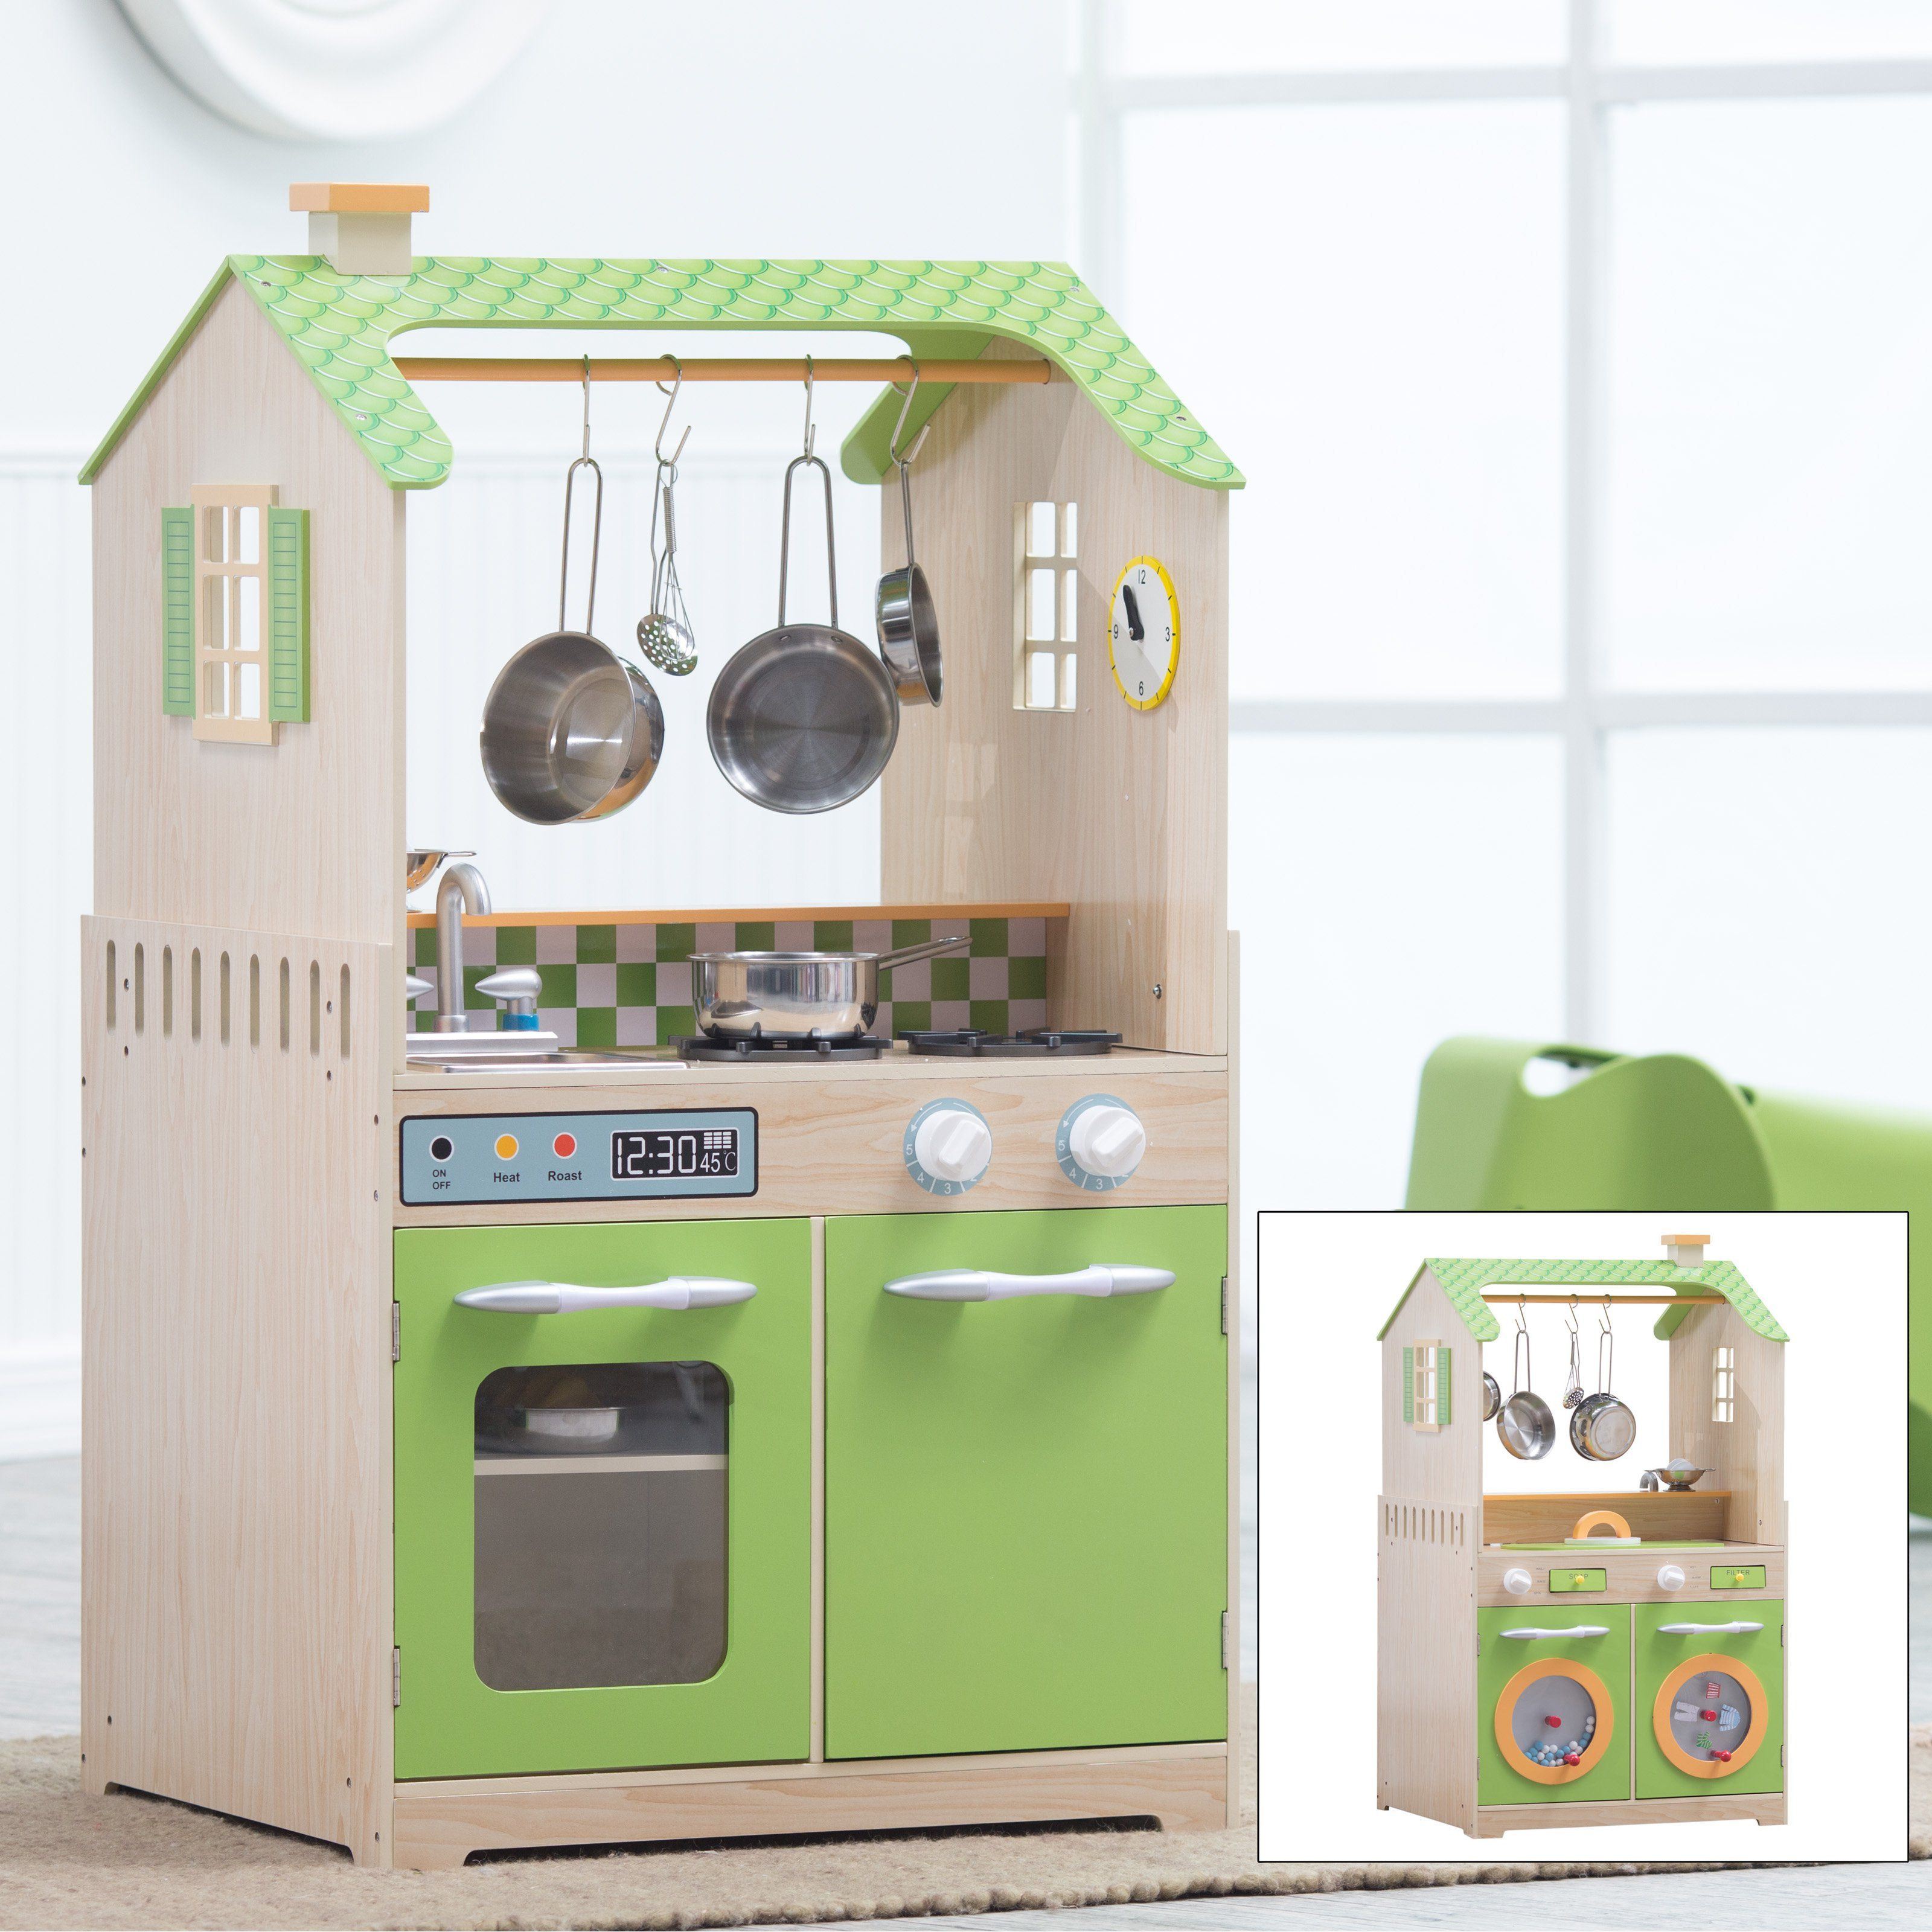 Kids wooden play kitchen  Teamson Kids Play Kitchen and Laundry Playset  from hayneedle